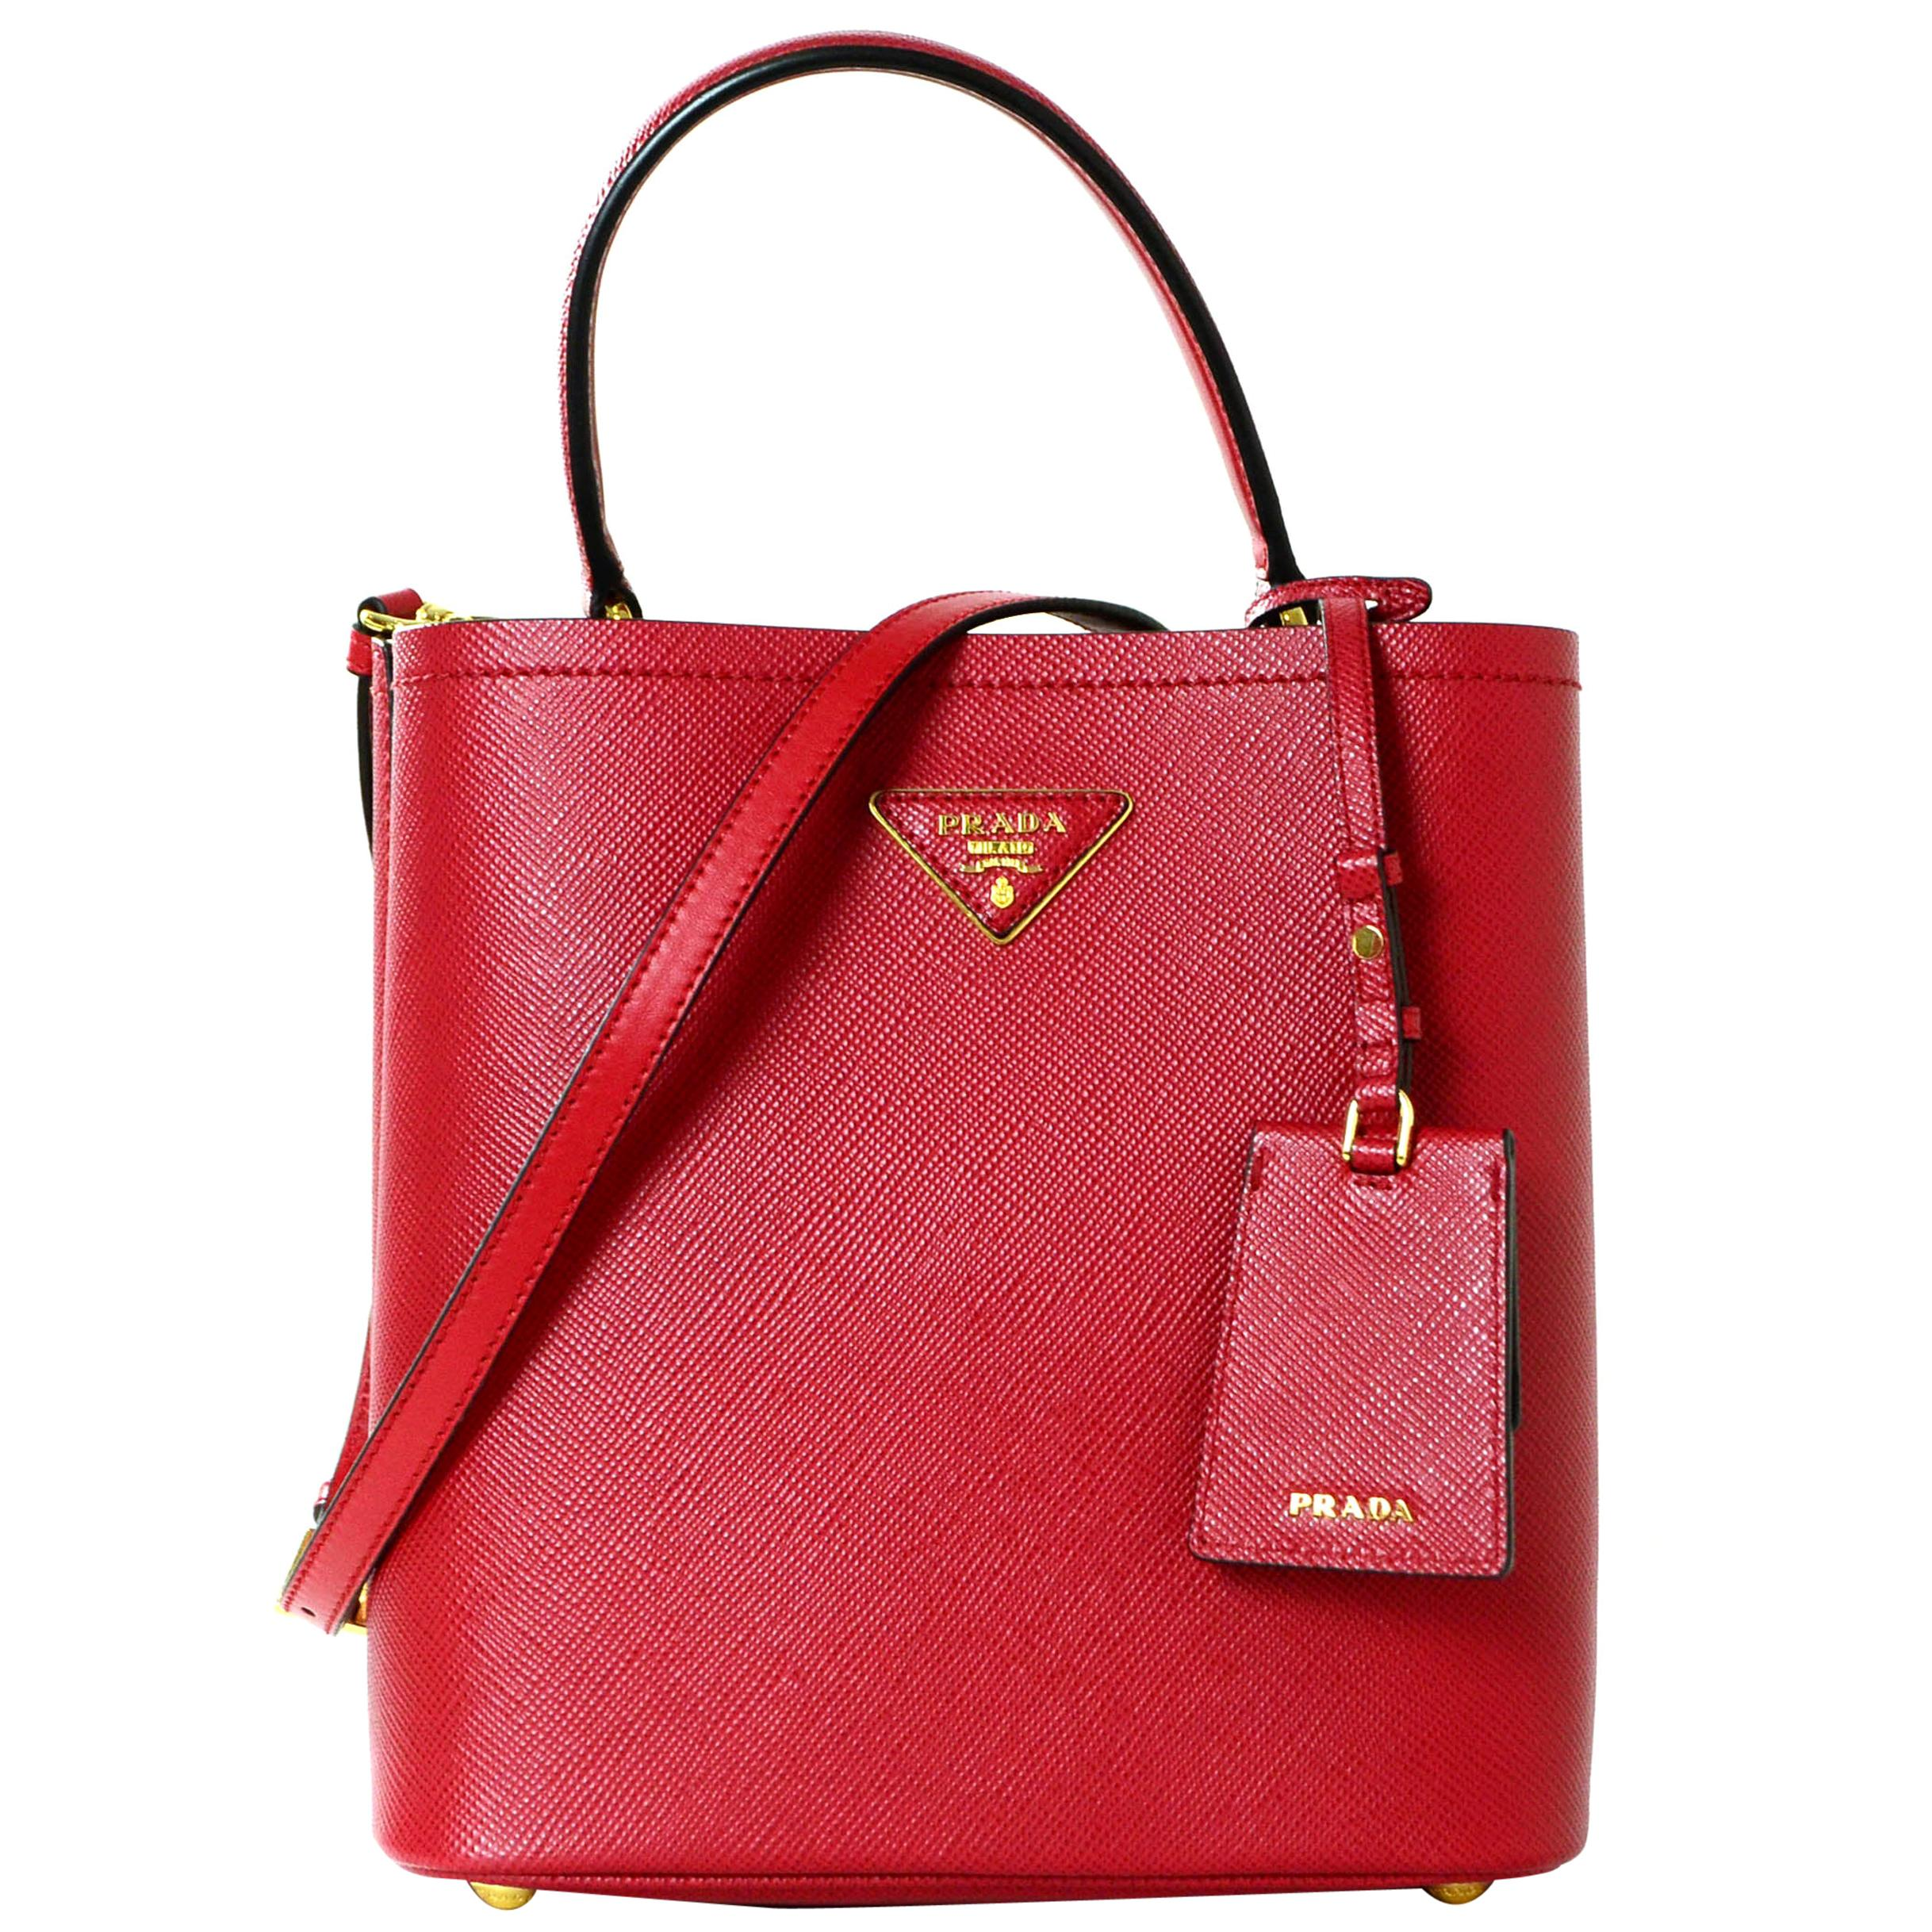 Prada 1BA212 Fuoco Red/Nero Black Medium Saffiano Leather Bucket Bag rt. $2,550